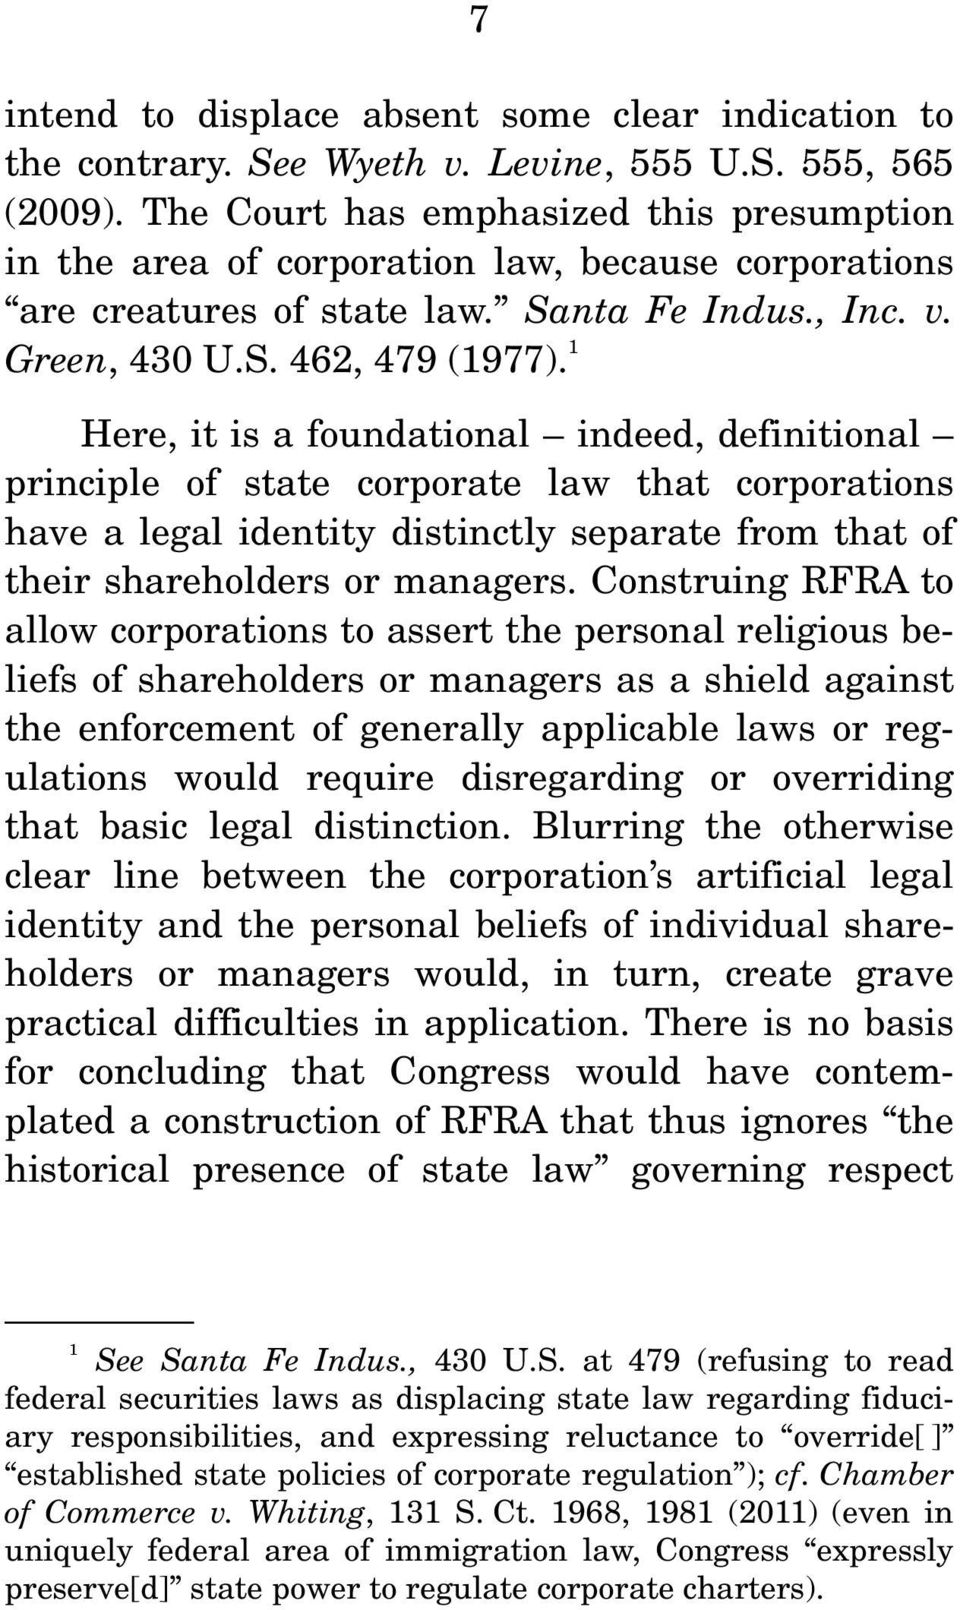 1 Here, it is a foundational indeed, definitional principle of state corporate law that corporations have a legal identity distinctly separate from that of their shareholders or managers.